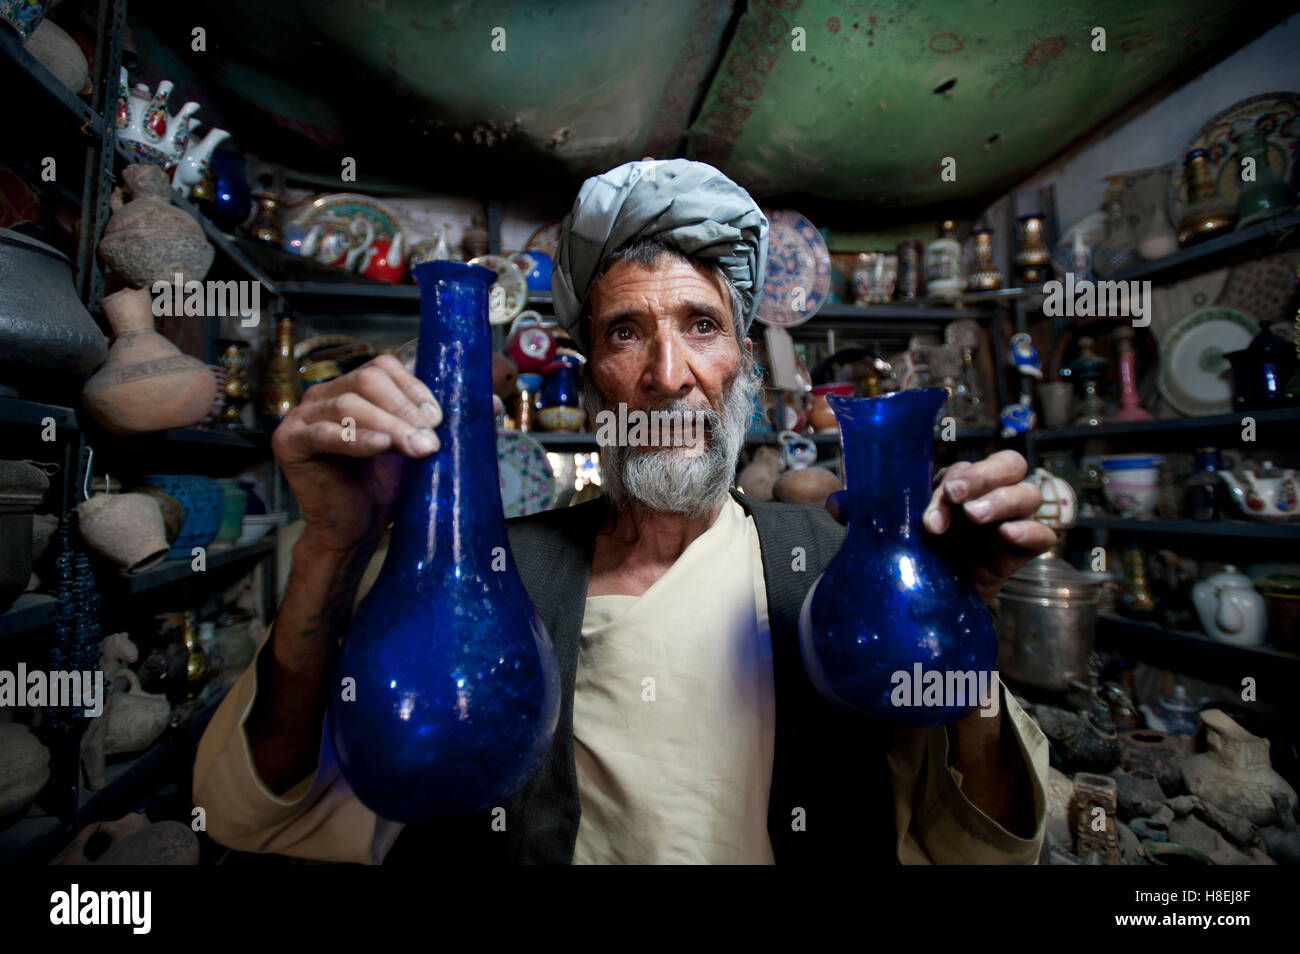 A glass blower holds up blue glass gourd-shaped vases in a trinket shop in Herat, Afghanistan, Asia - Stock Image